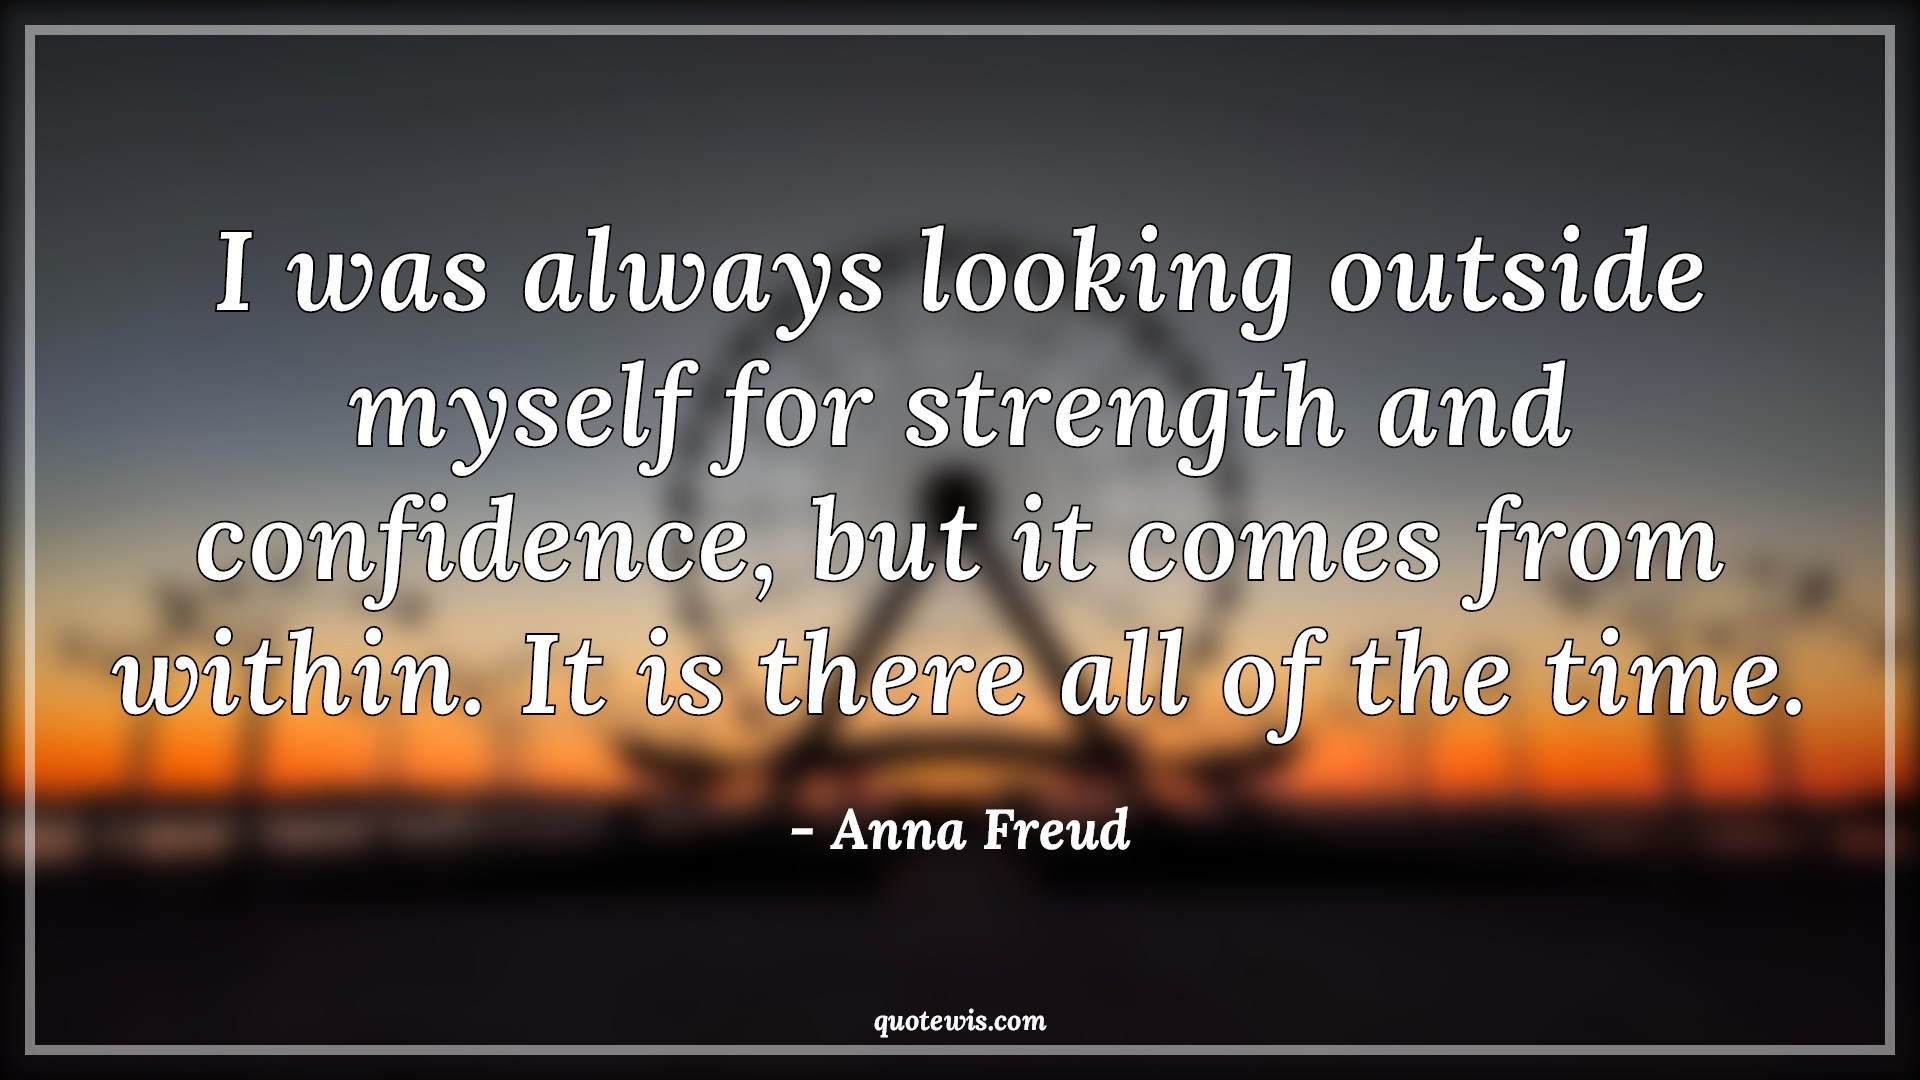 I was always looking outside myself for strength and confidence, but it comes from within. It is there all of the time.